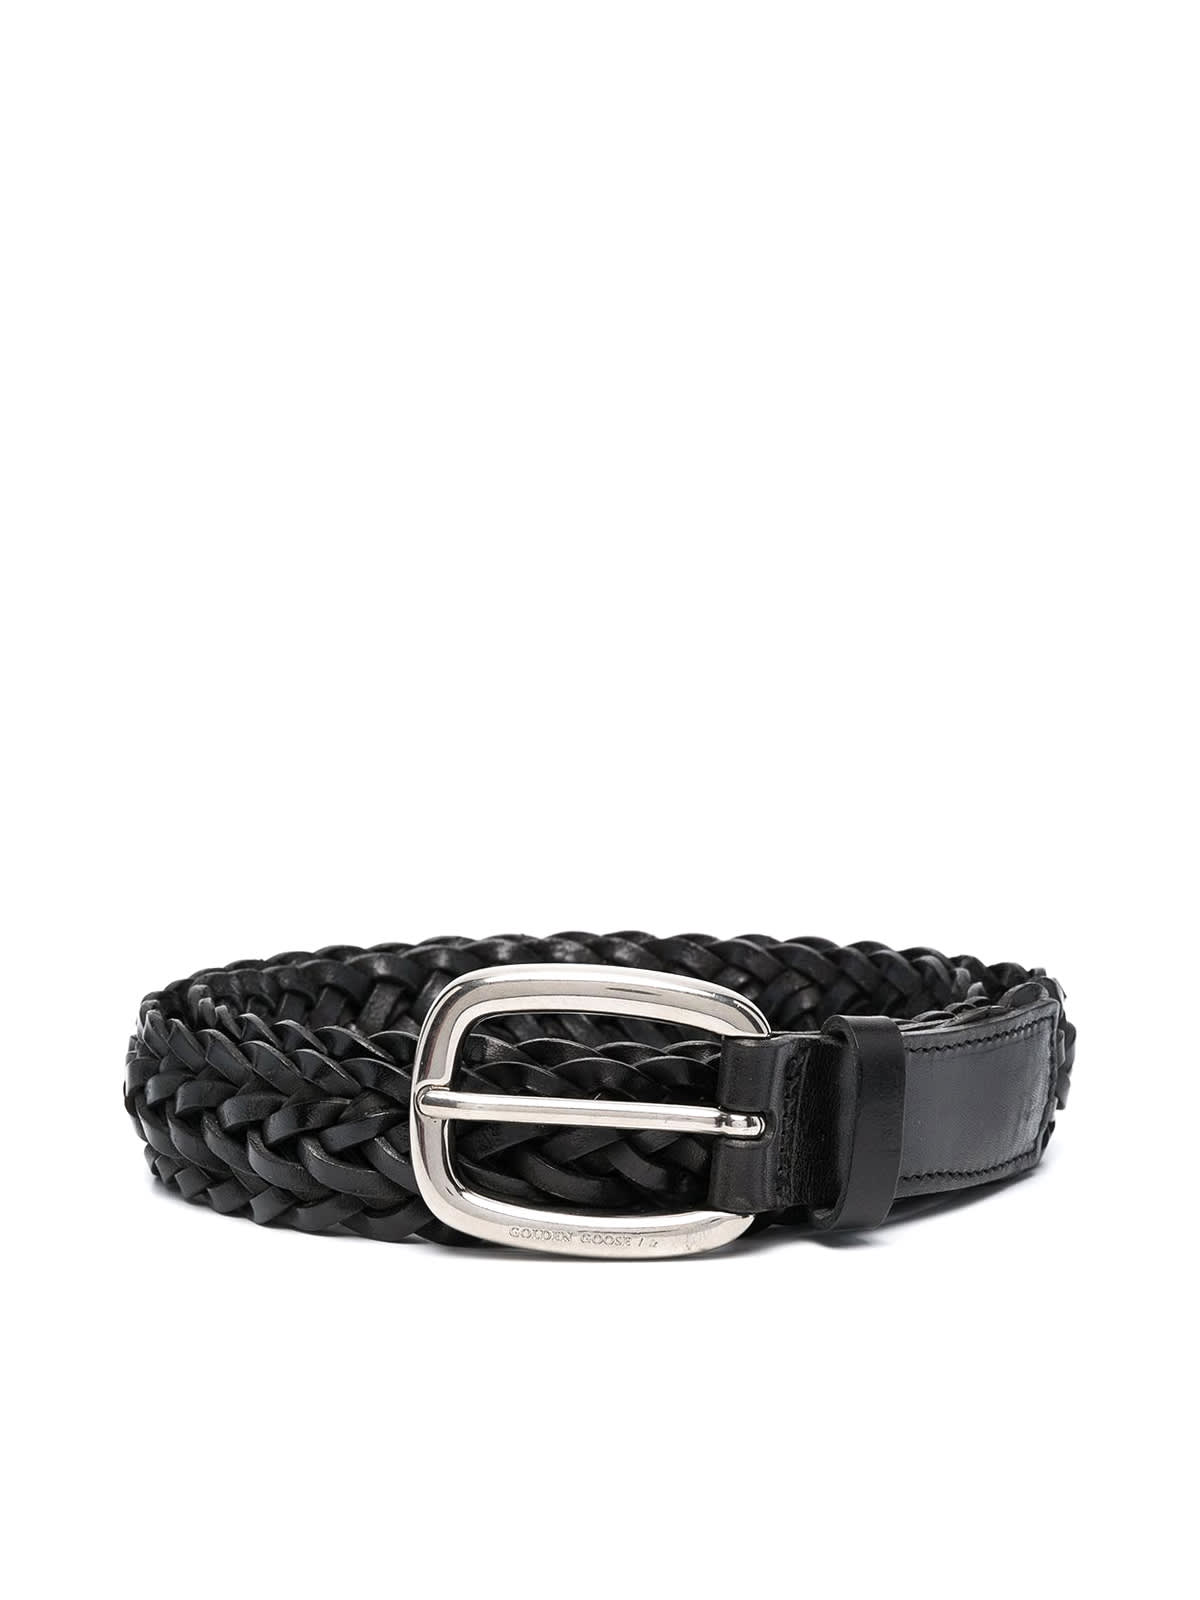 Golden Goose Belts BELT HOUSTON WOVEN WASHED LEATHER